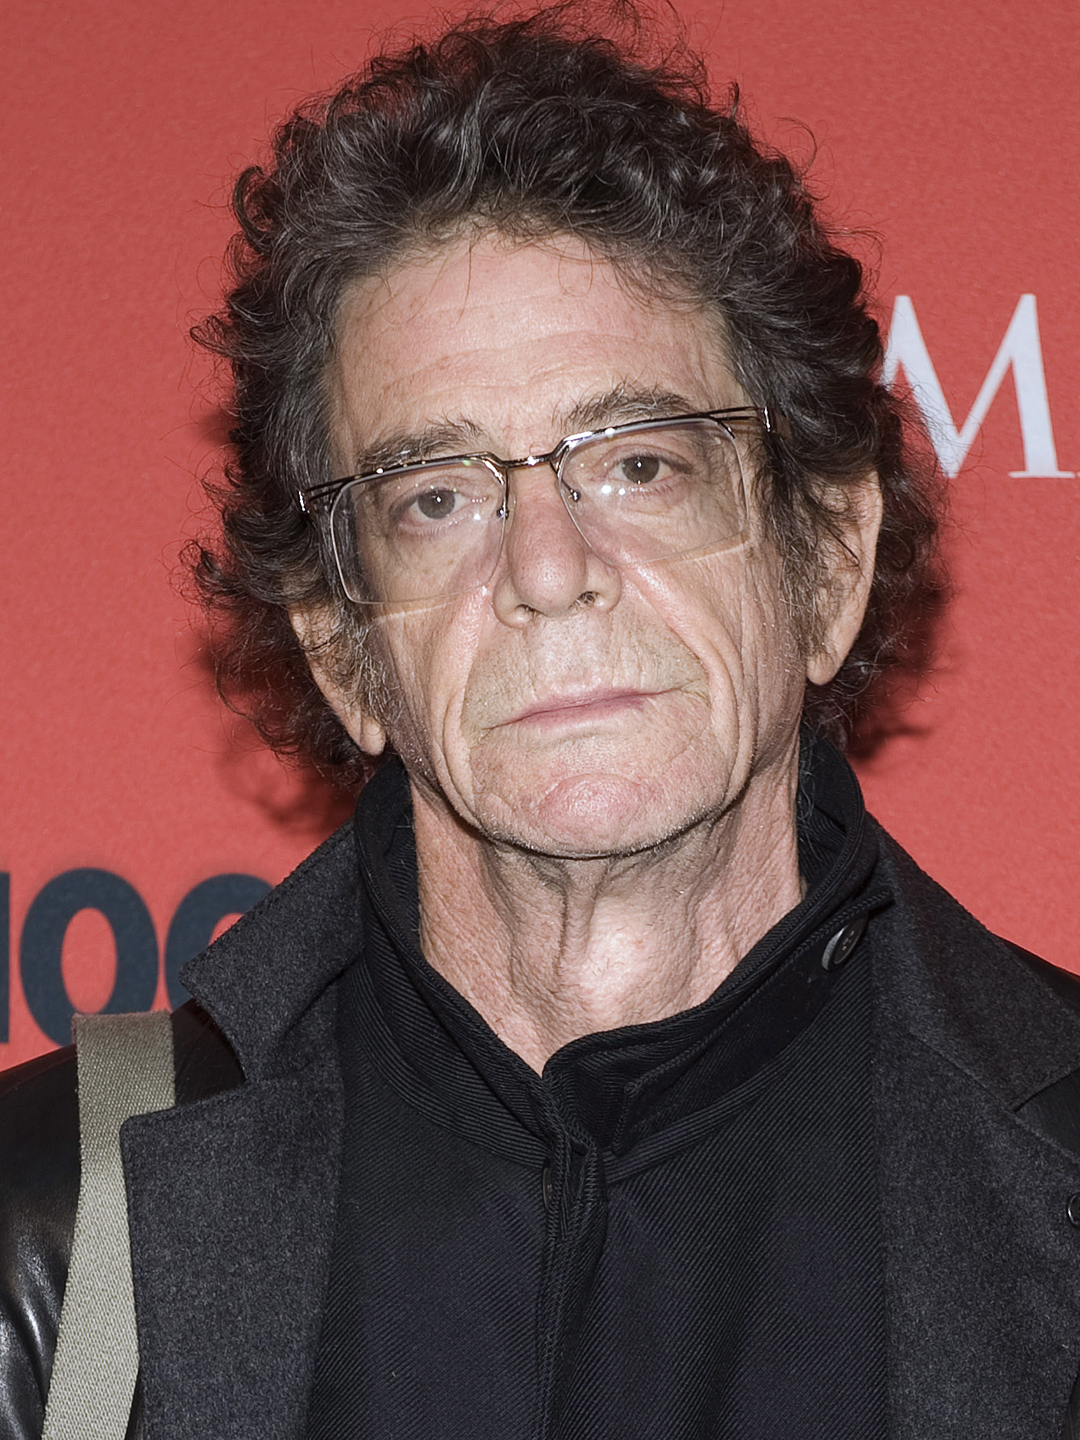 Image result for lou reed songs